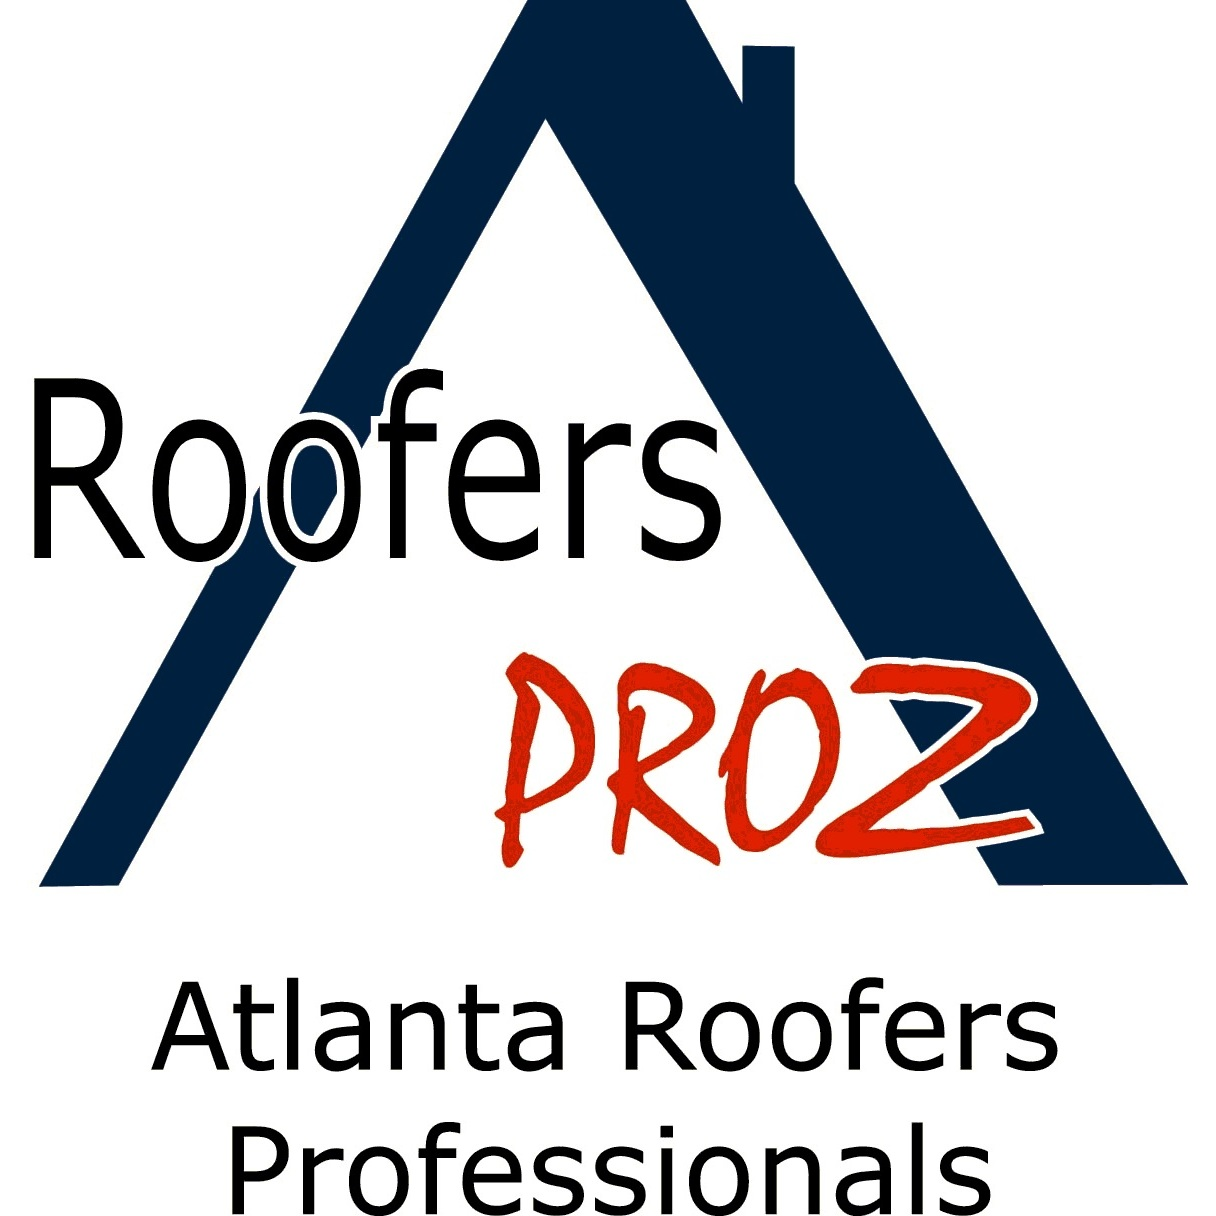 Atlanta Roofer Professional